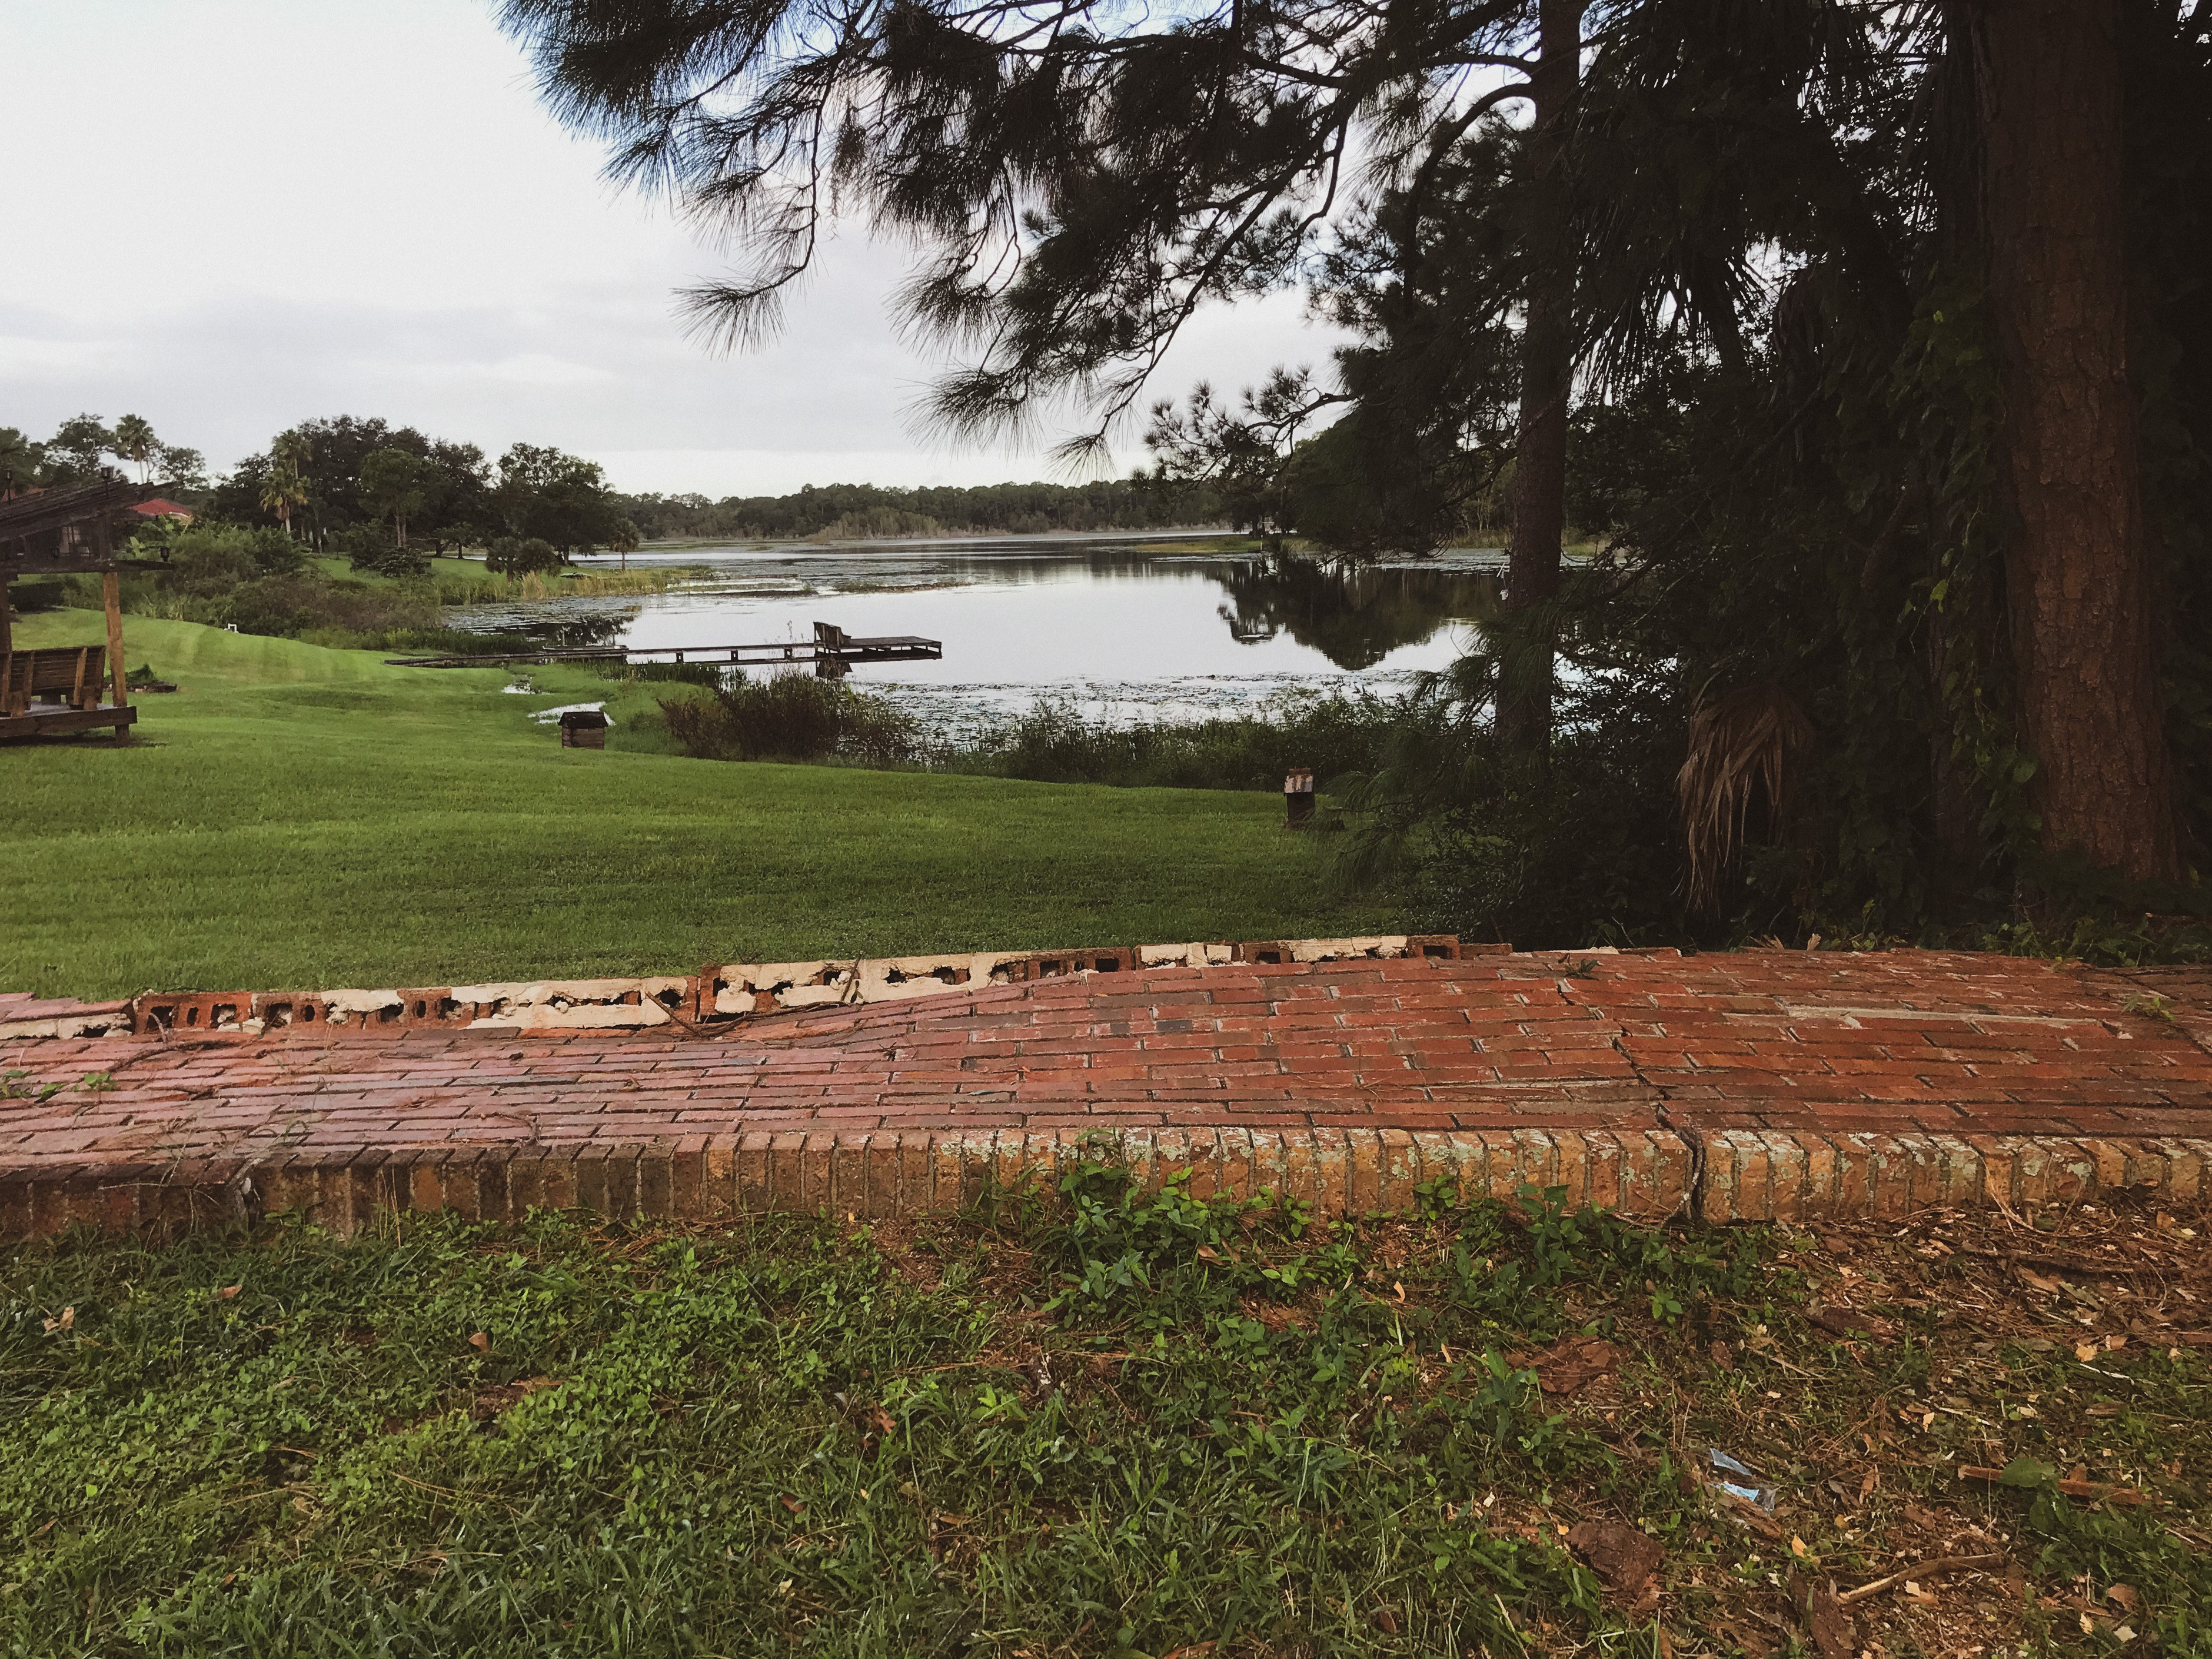 A brick wall knocked over in the storm laying flat, now like a brick pathway might look. Beyond, a dock and a scenic lake.